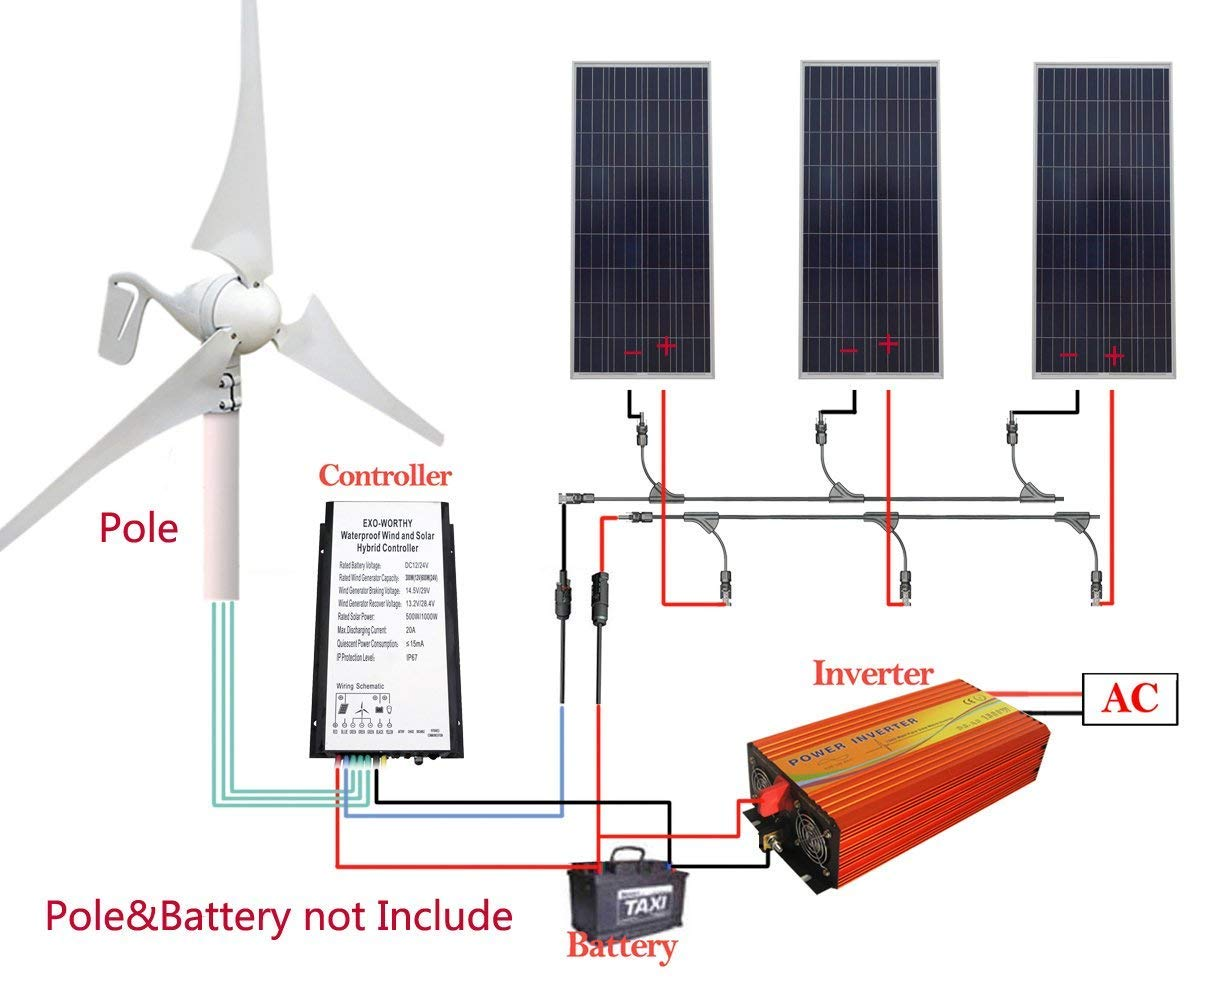 850w wind solar hybrid power supply system 1pc 400w wind generator850w wind solar hybrid power supply system 1pc 400w wind generator 3pcs 160w solar panels 20a controller 1000w 12v 220v off grid inverter for charging